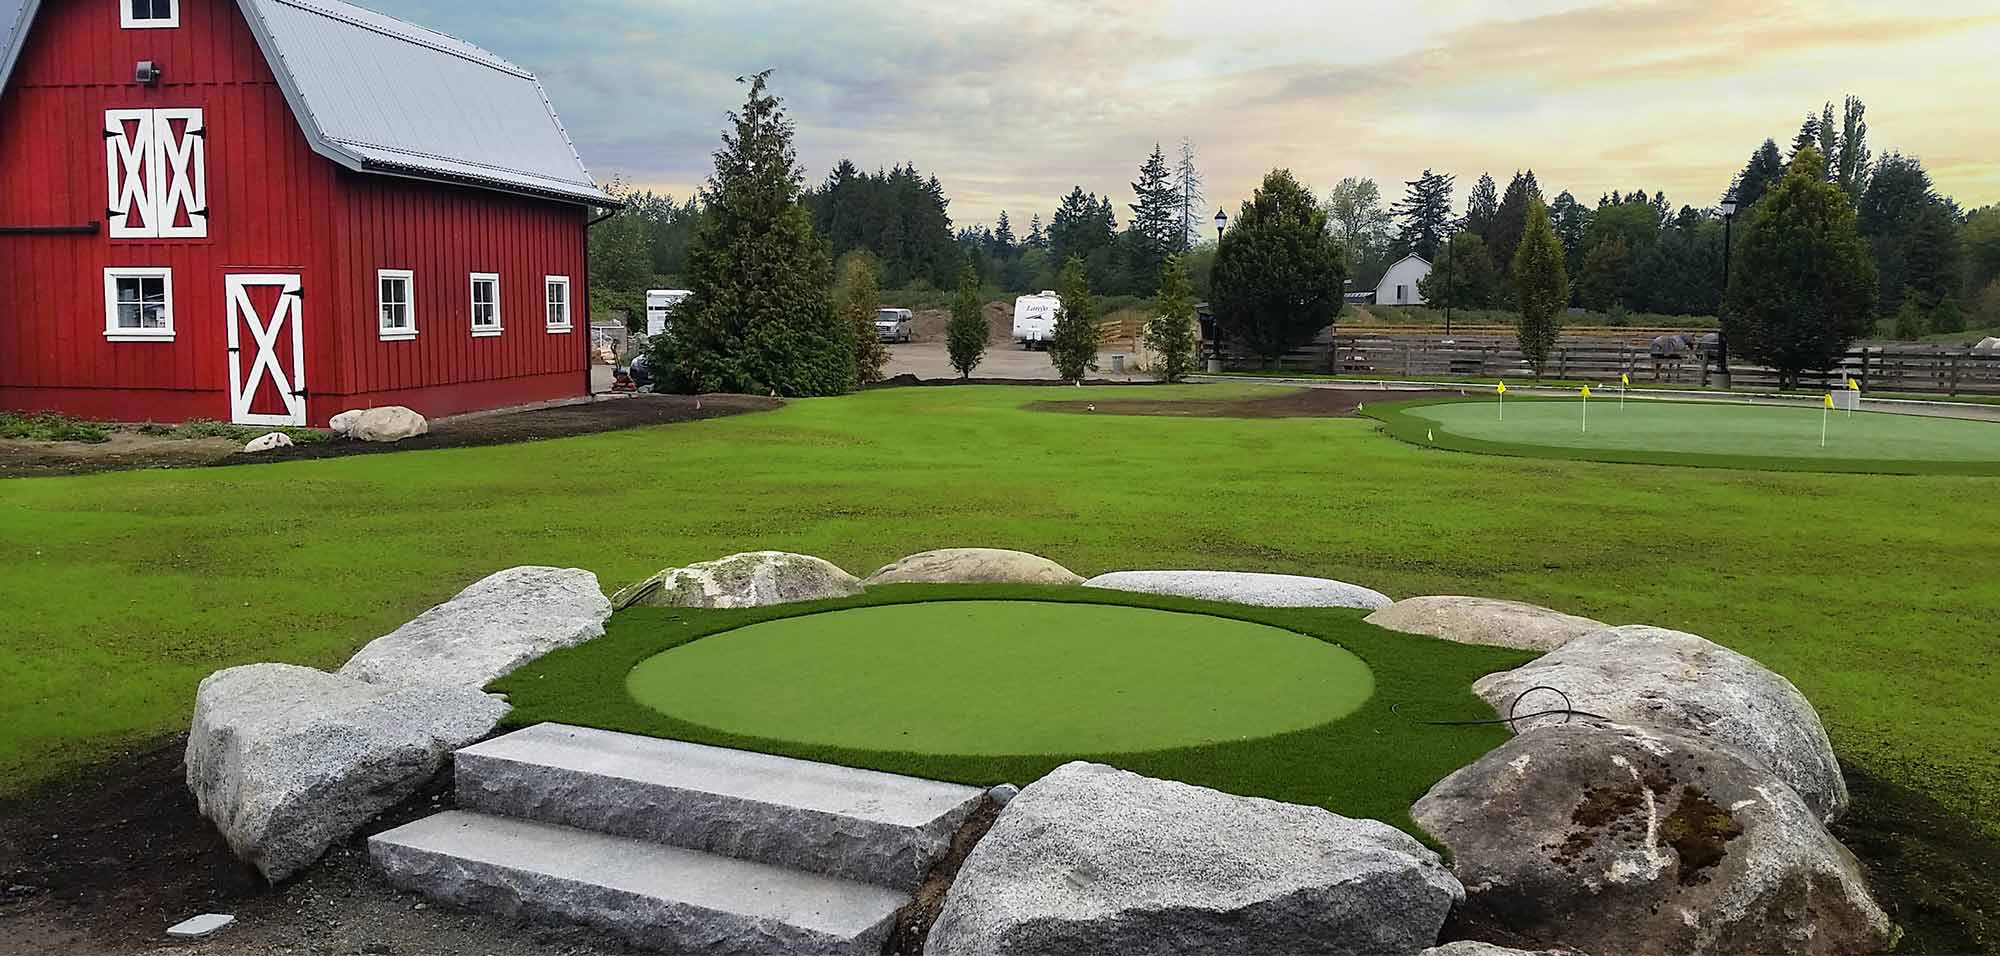 Western Canada's leading artificial grass installer since 1999.